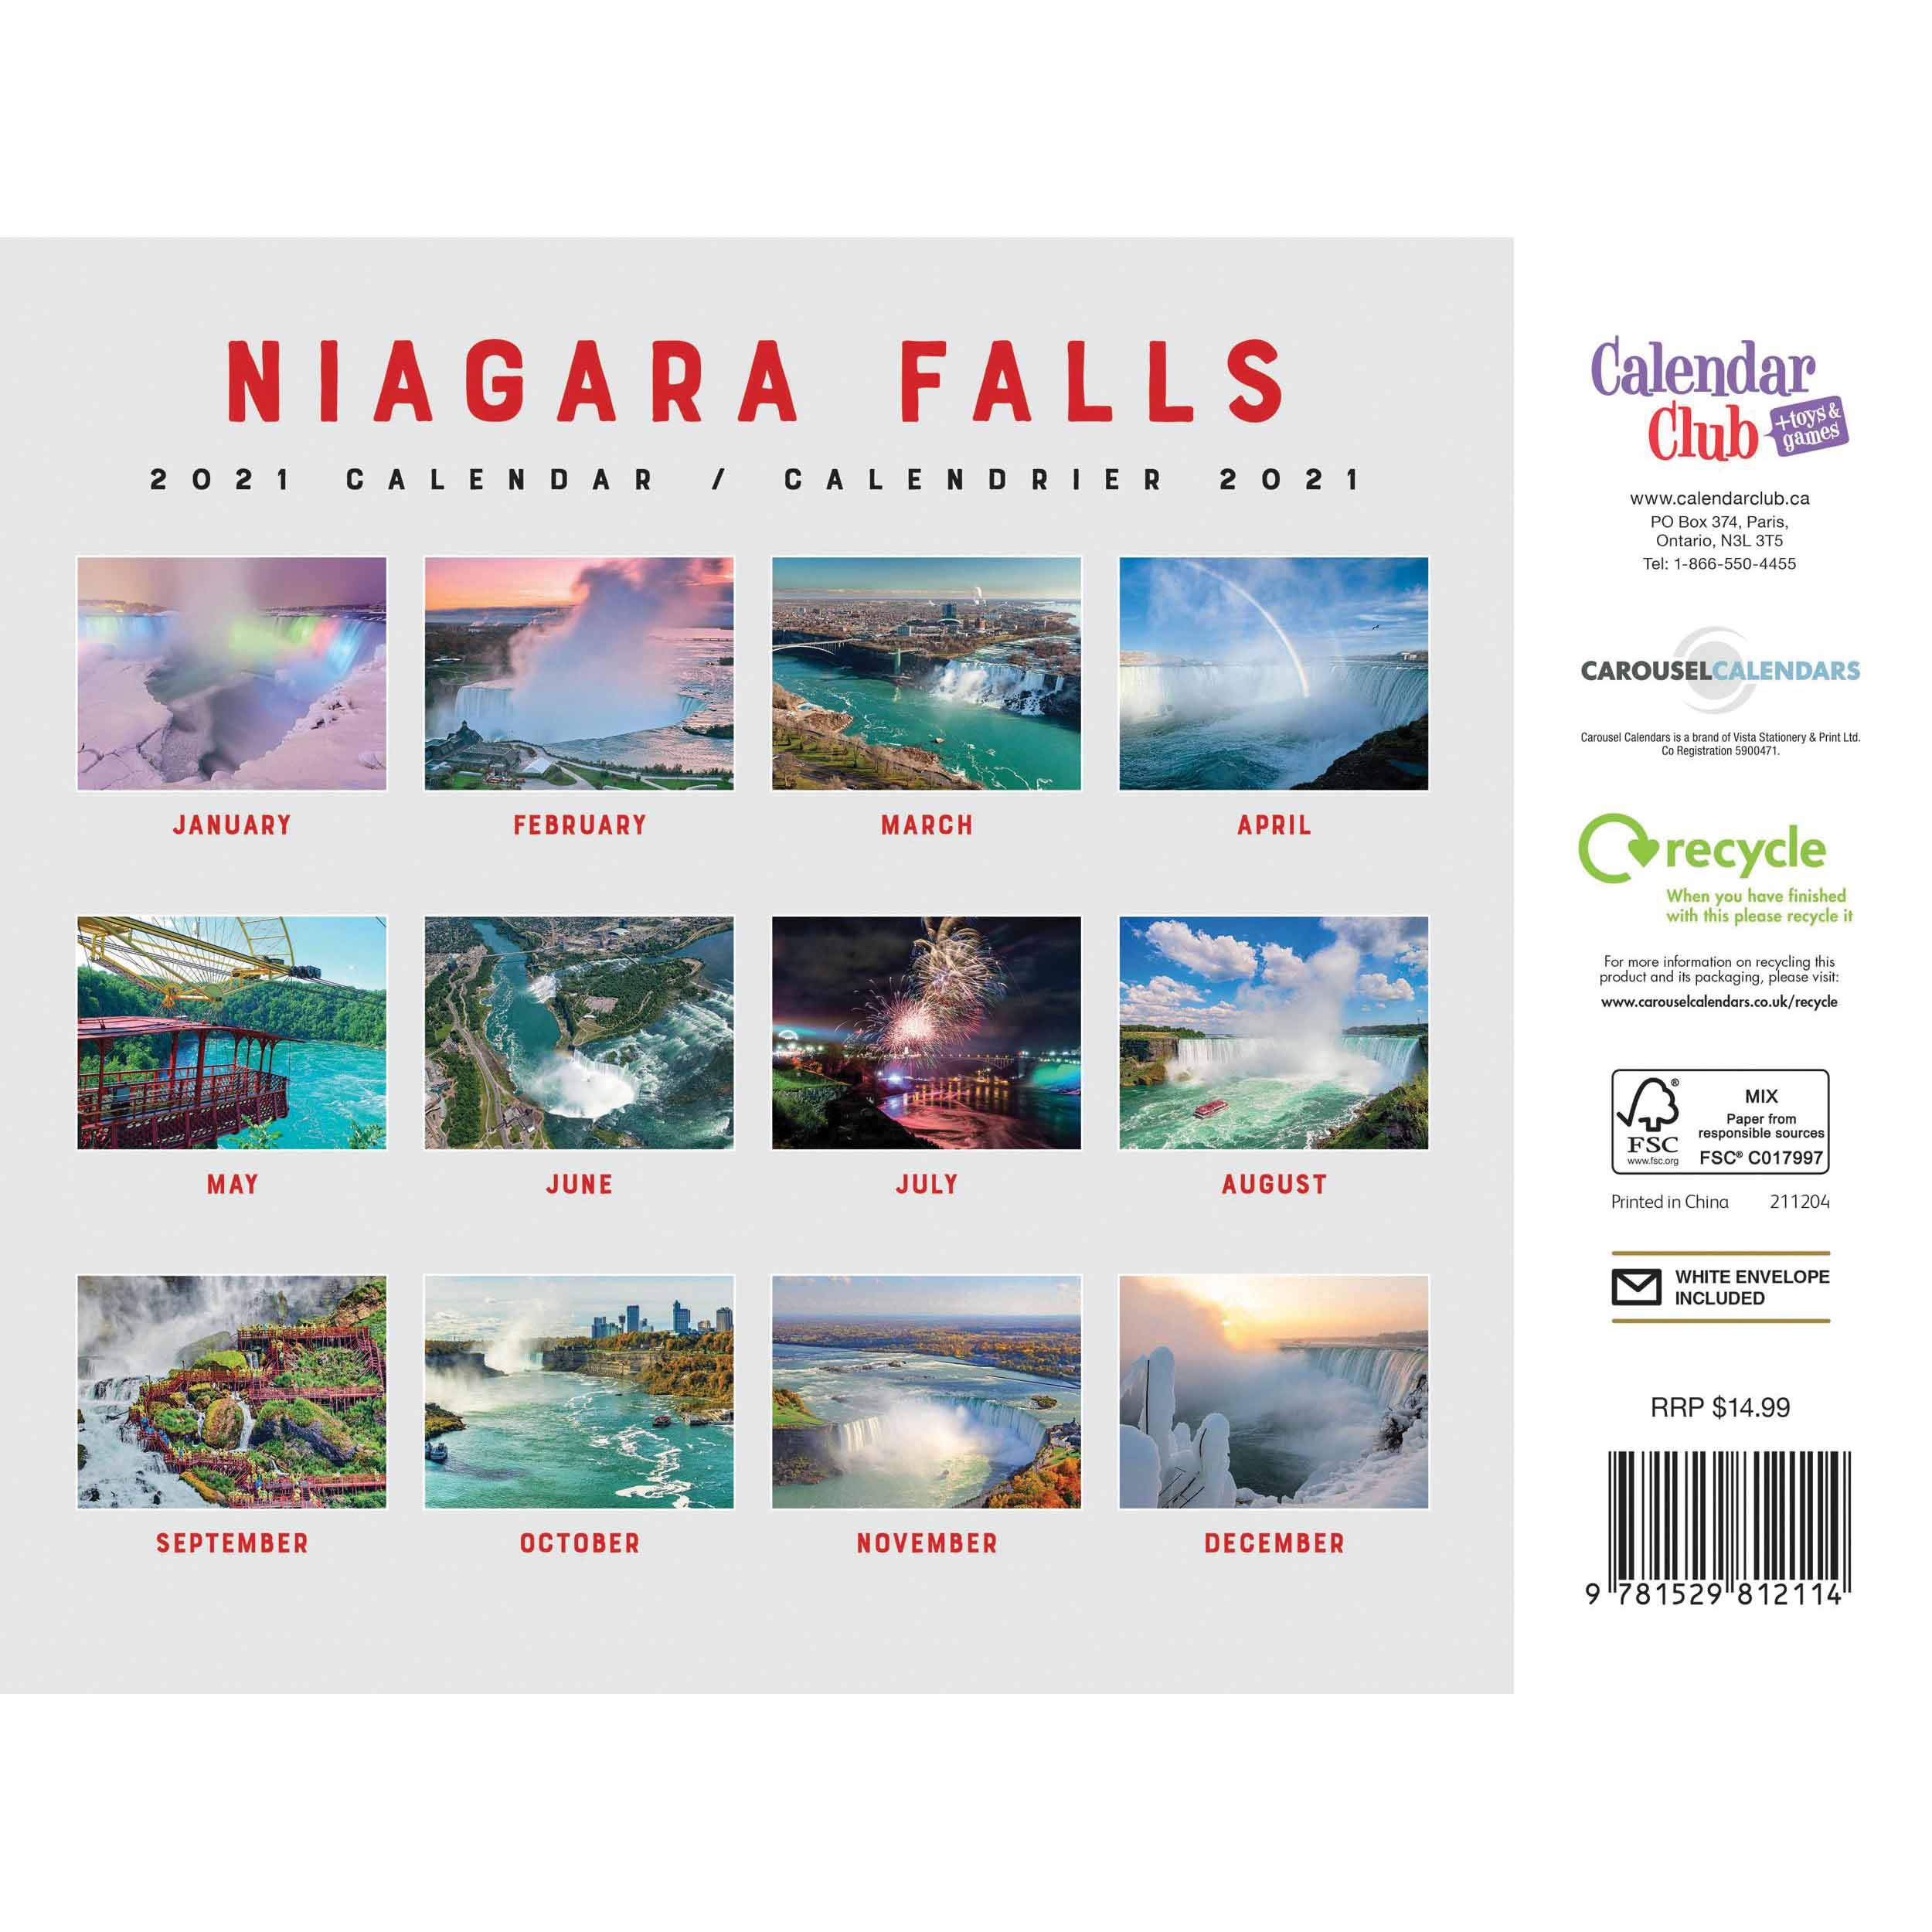 Niagara Falls A4 Calendar 2021 At Calendar Club With Niagara Falls School Calendar 2021